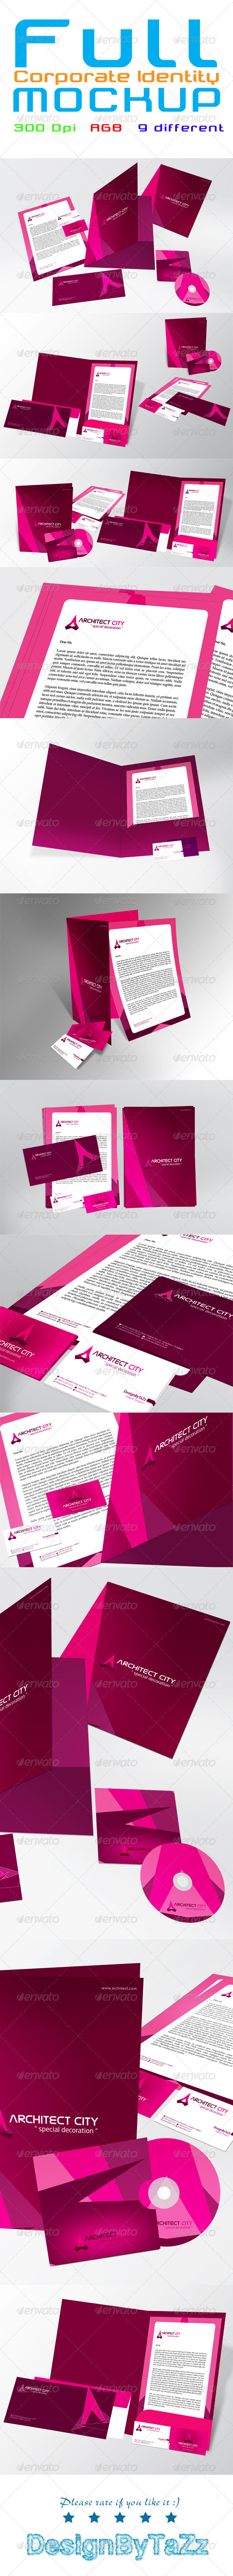 Full Corporate Identity Package